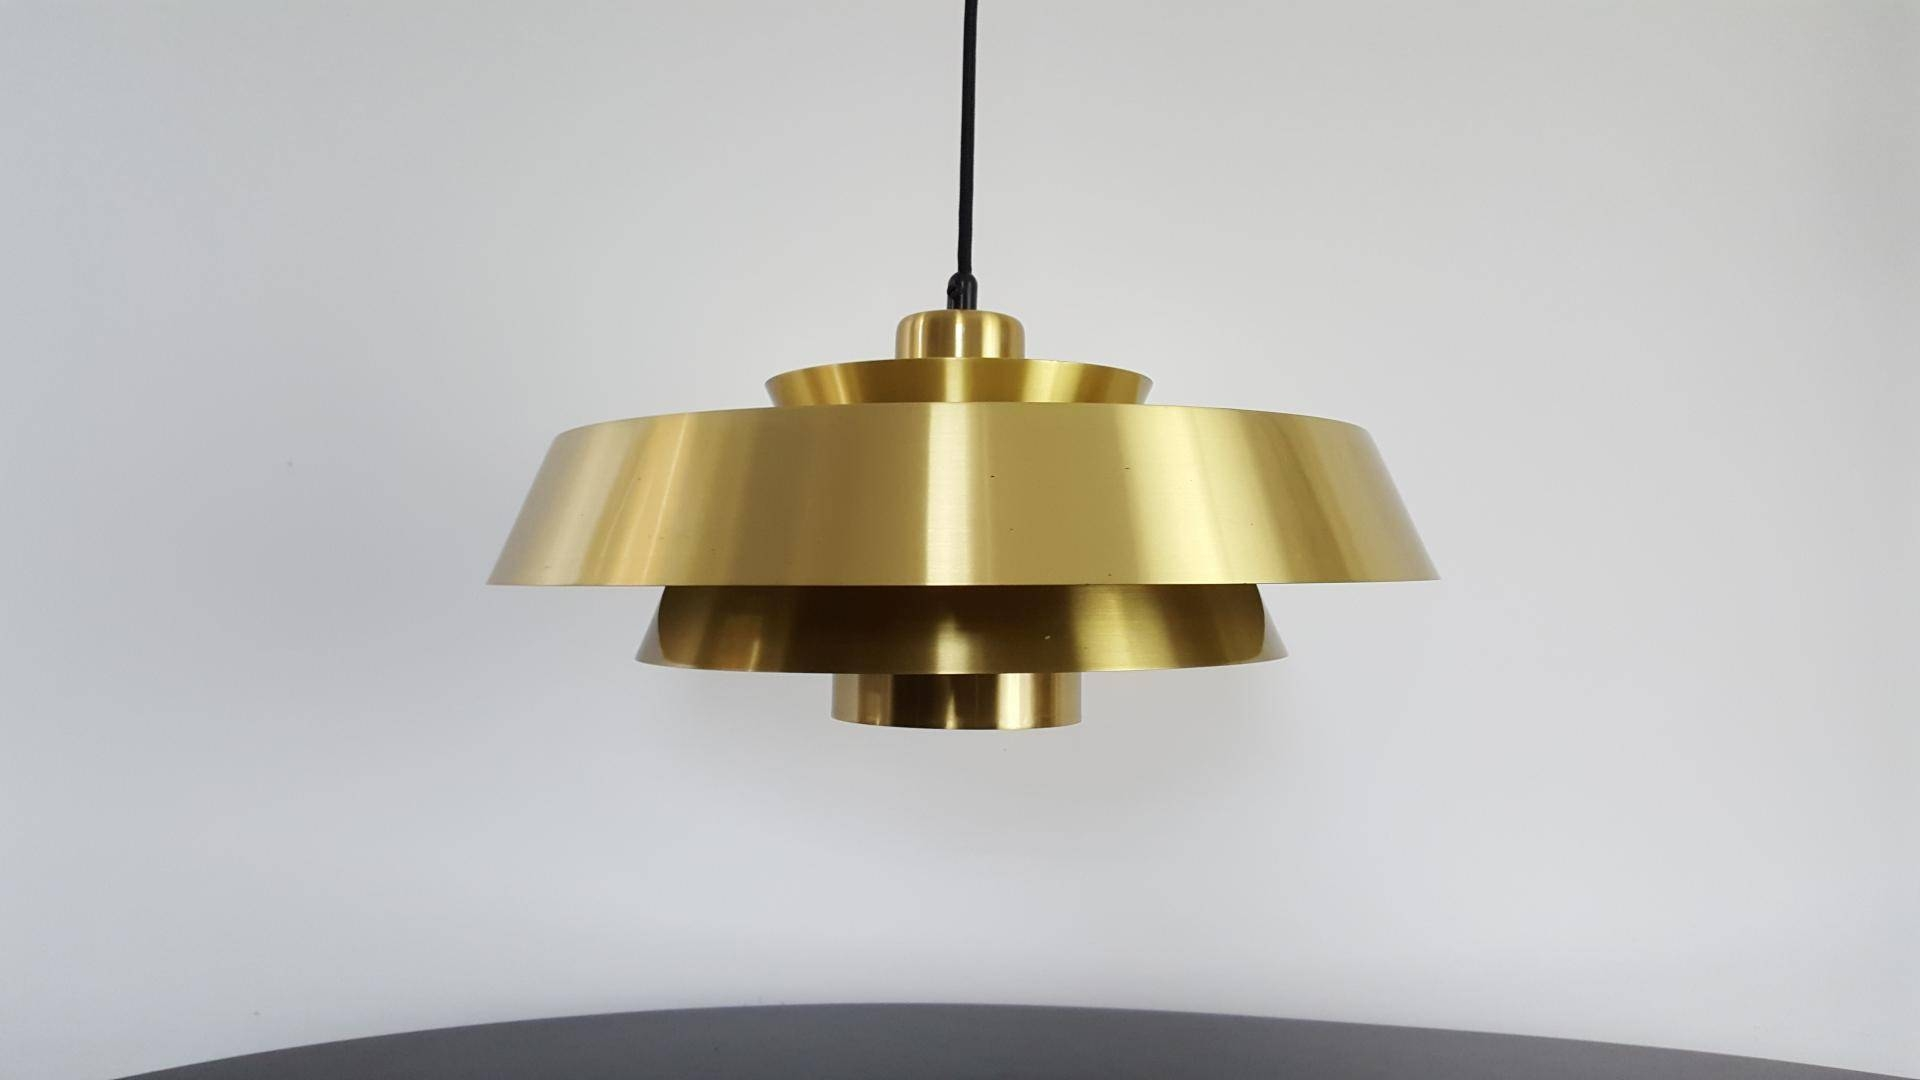 Nova Brass Pendant Lightjo Hammerborg For Fog & Mørup Denmark intended for 1960S Pendant Lighting (Image 8 of 15)